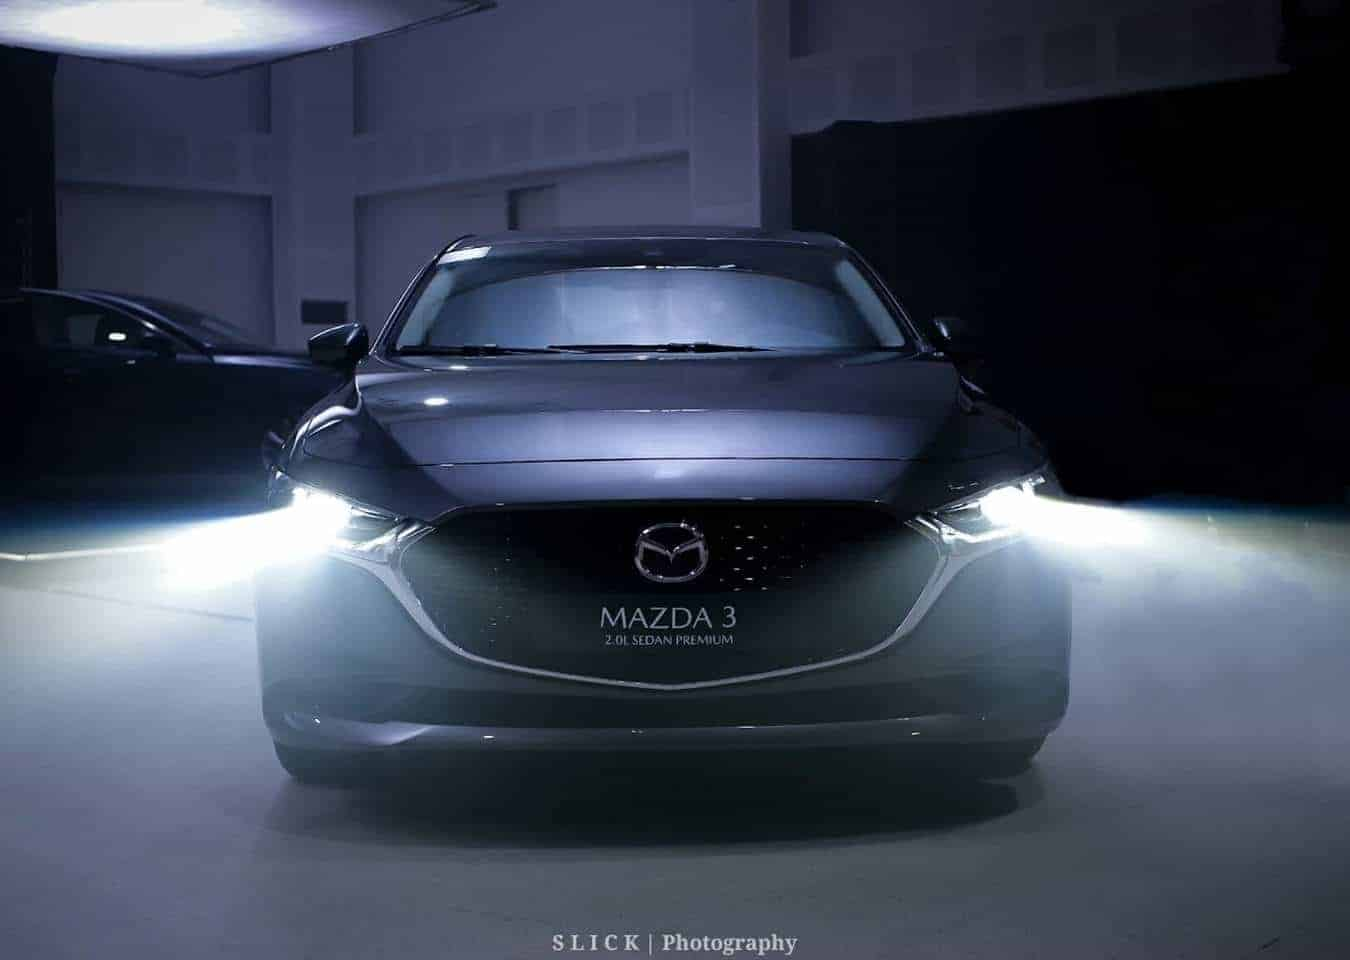 89 Gallery of Mazda 3 2020 Philippines Pricing by Mazda 3 2020 Philippines